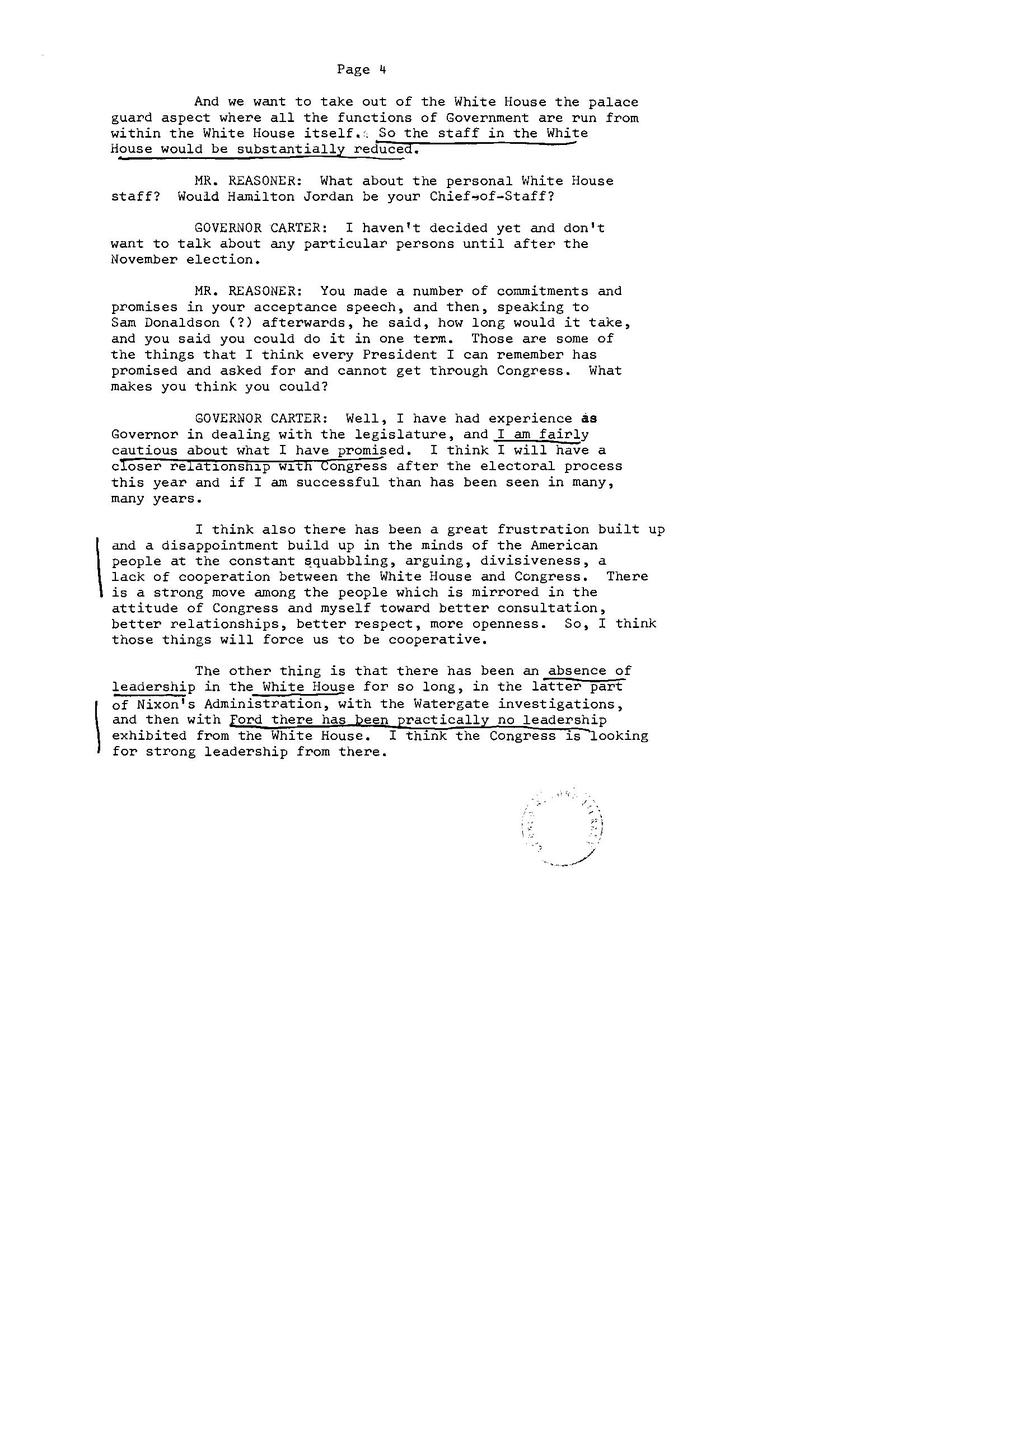 Page:Carter Interview with Harry Reasoner (Gerald Ford and